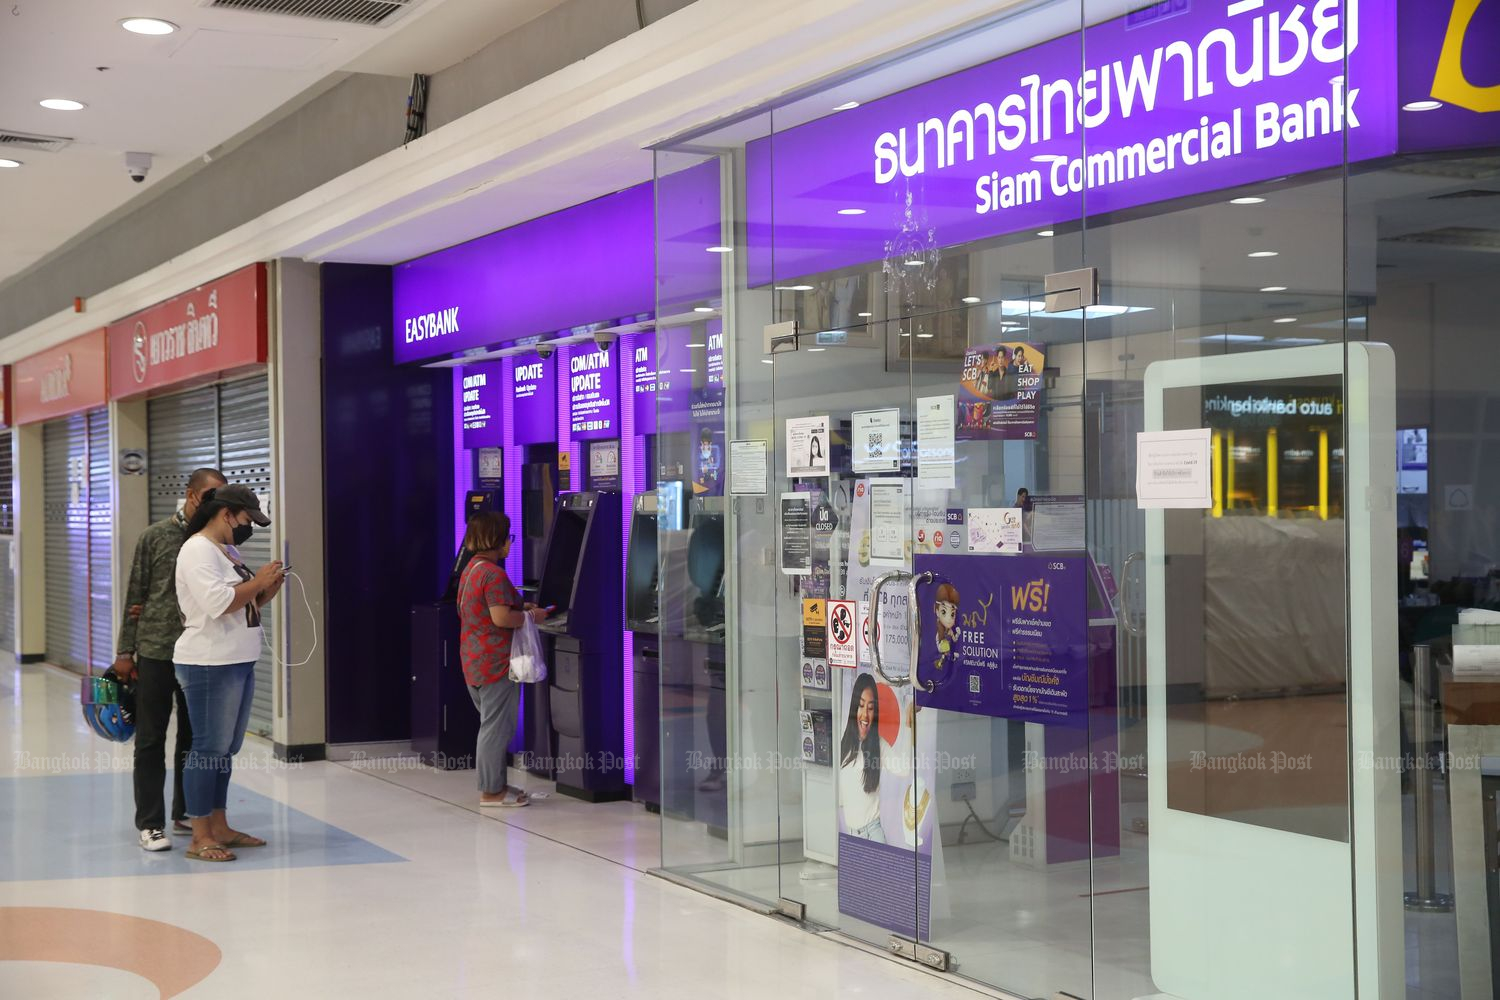 SCB shares at 25-month high on news